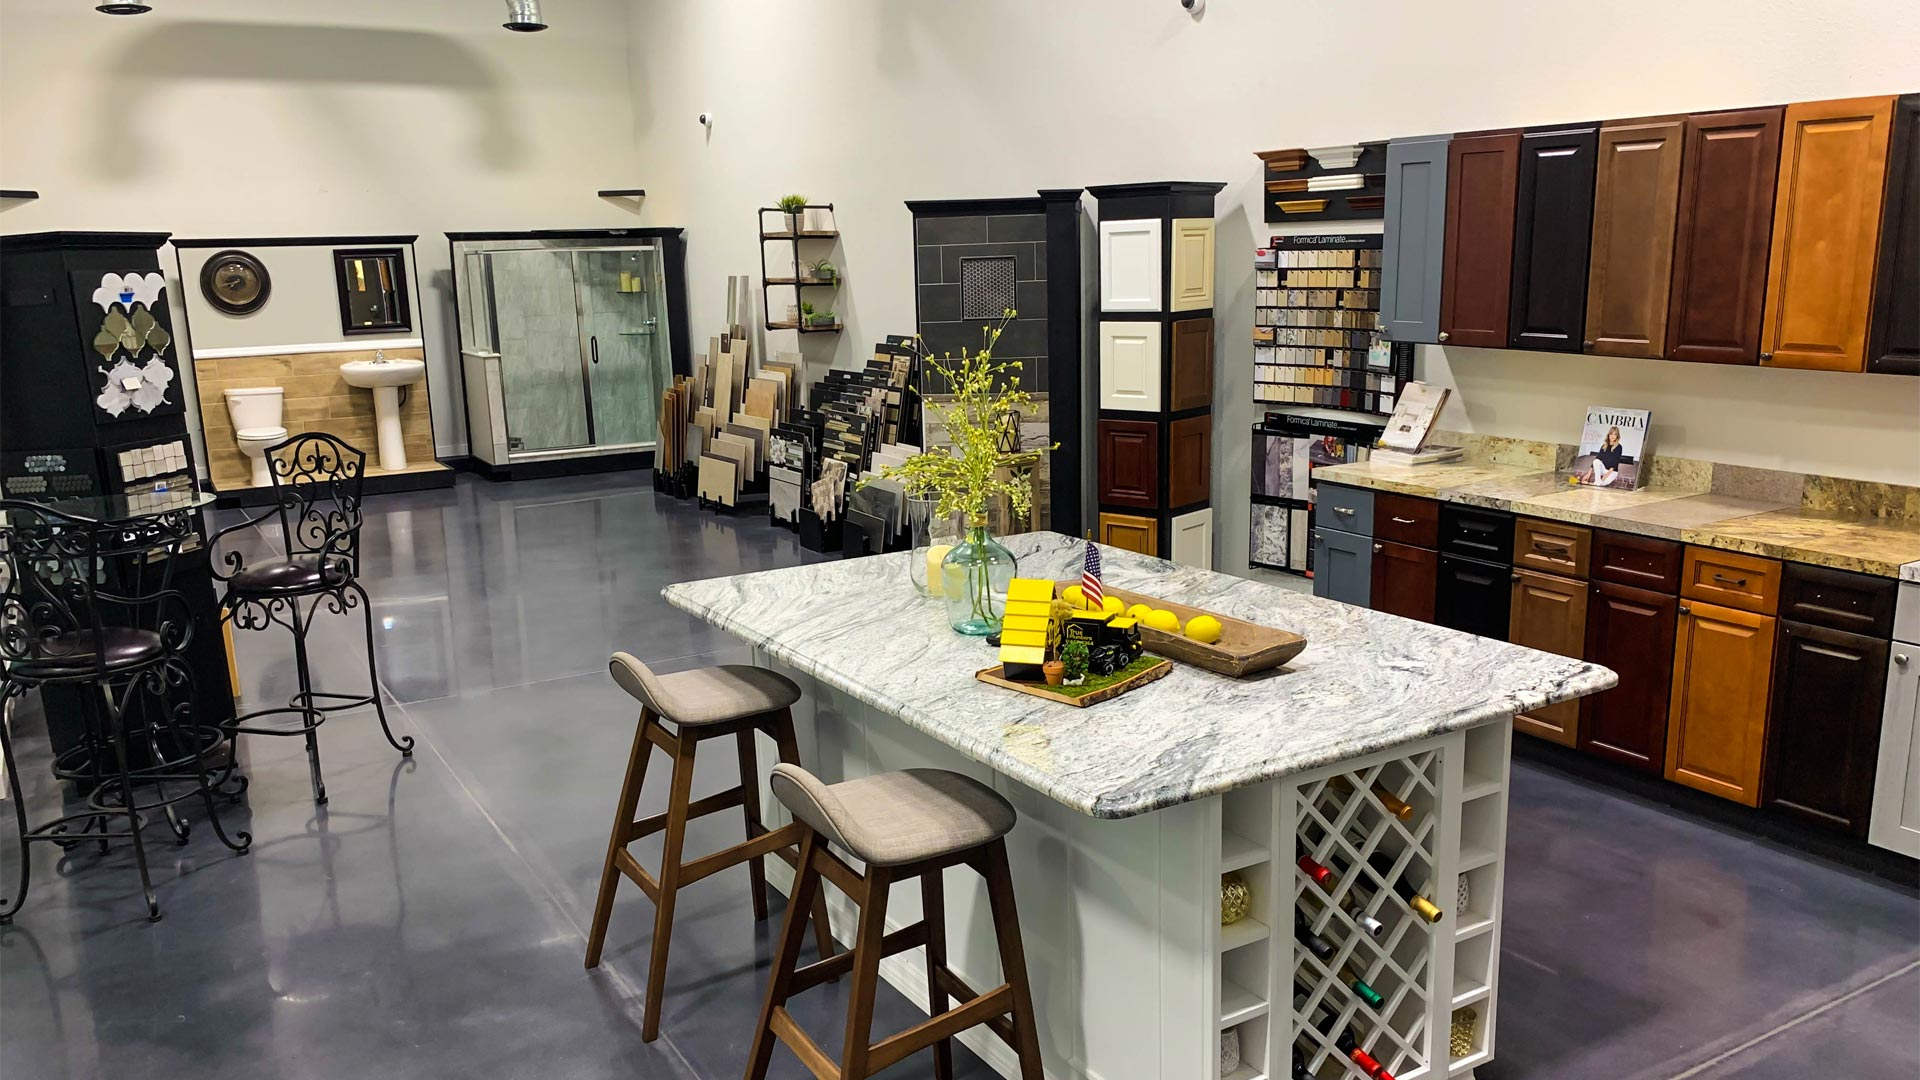 True Builders consultation showroom at their location in Plant City, FL.